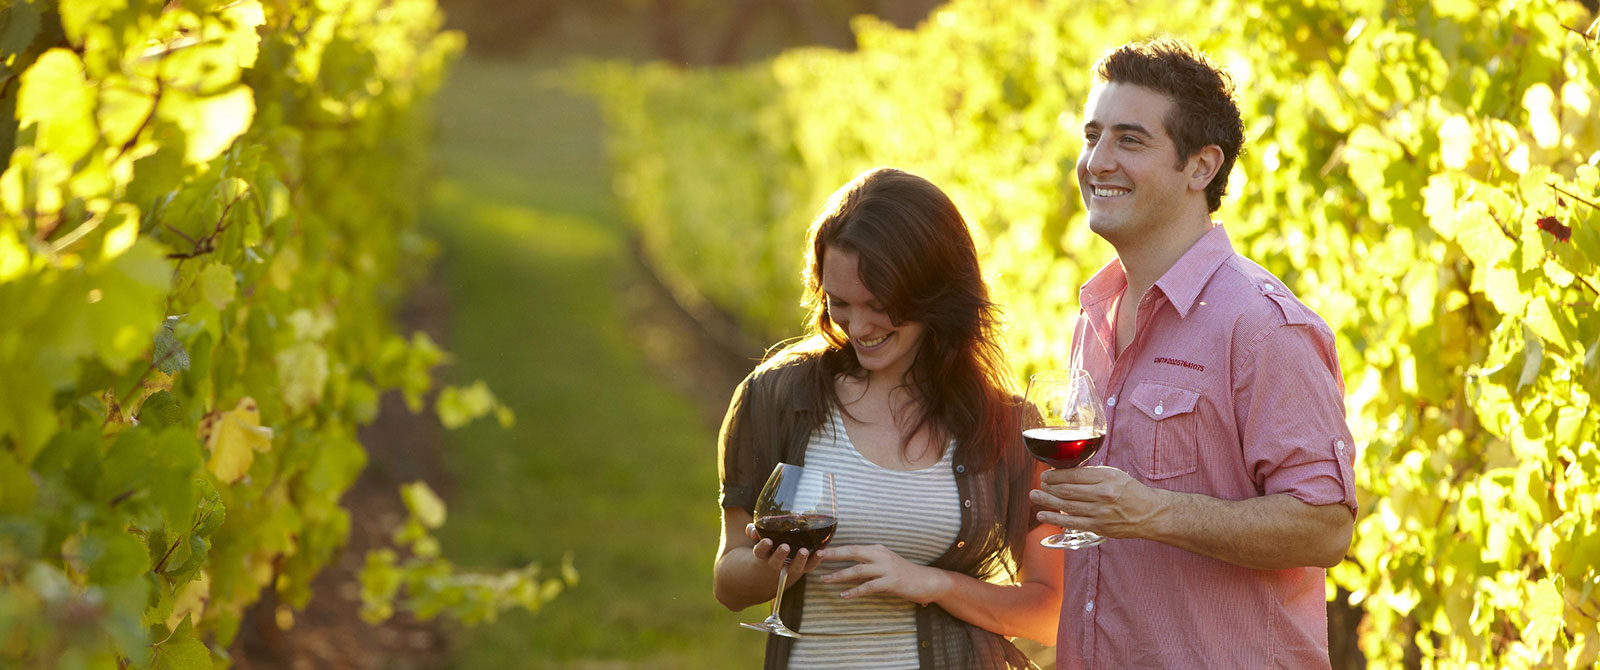 Wine Tasting in Mornington Peninsula - Melbourne Australia Luxury Vacations